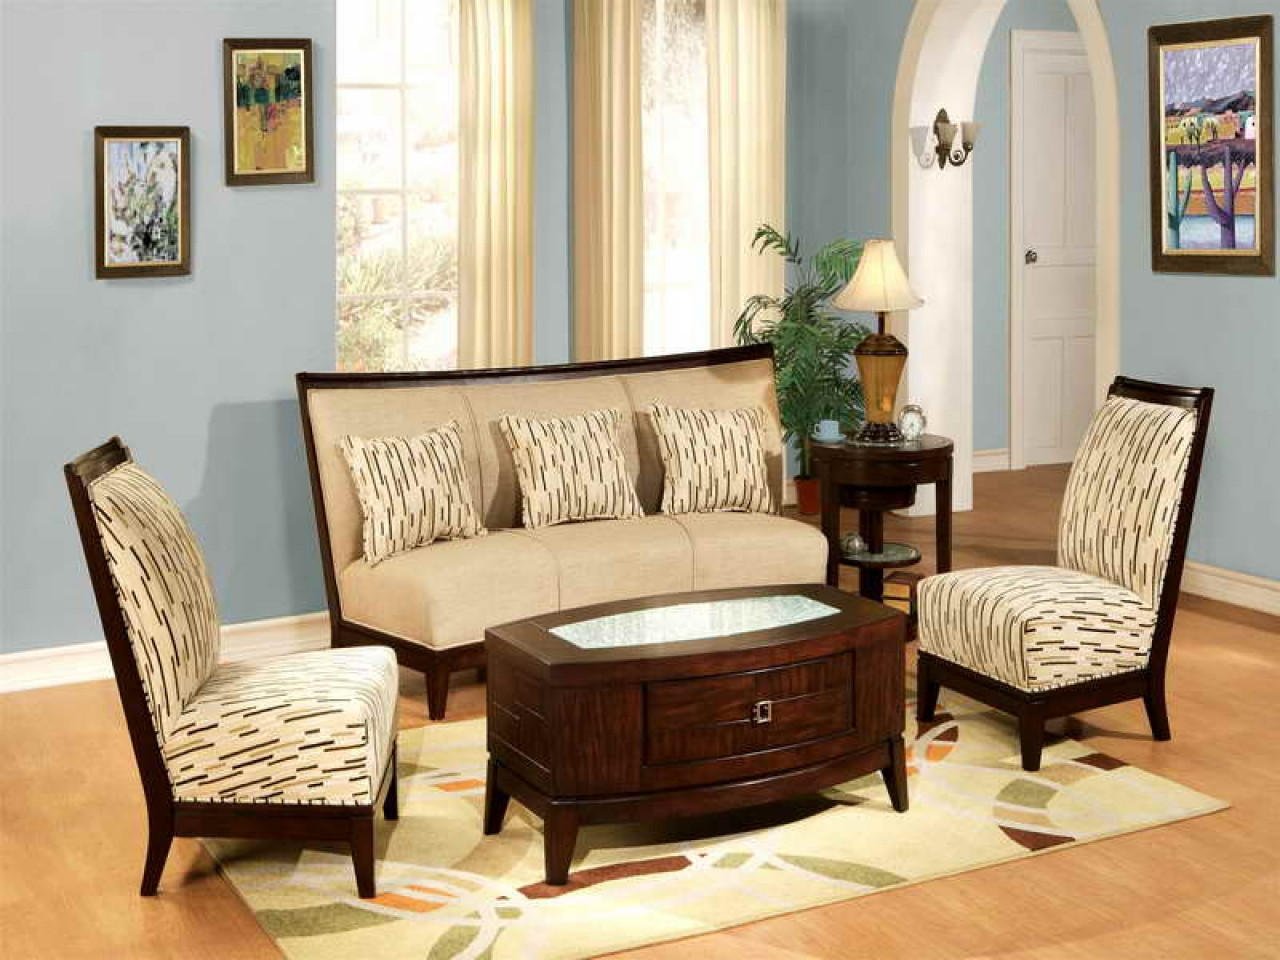 Best ideas about Furniture Ideas For Living Room . Save or Pin Living room ideas cheap affordable living room furniture Now.